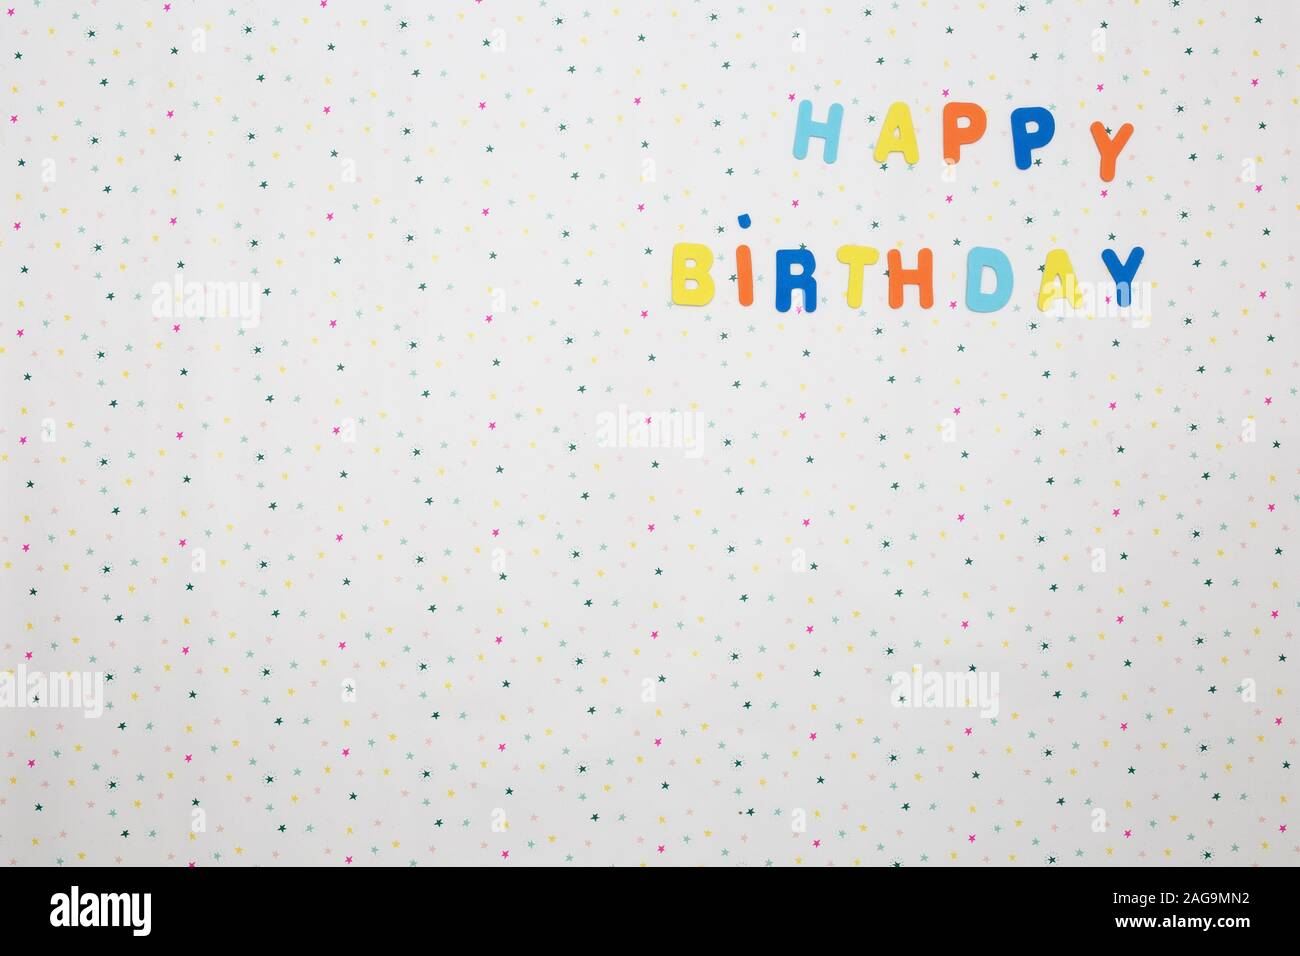 Colorful Happy Birthday Wishes With Stars On White Background Space For Text Happy Stock Photo Alamy